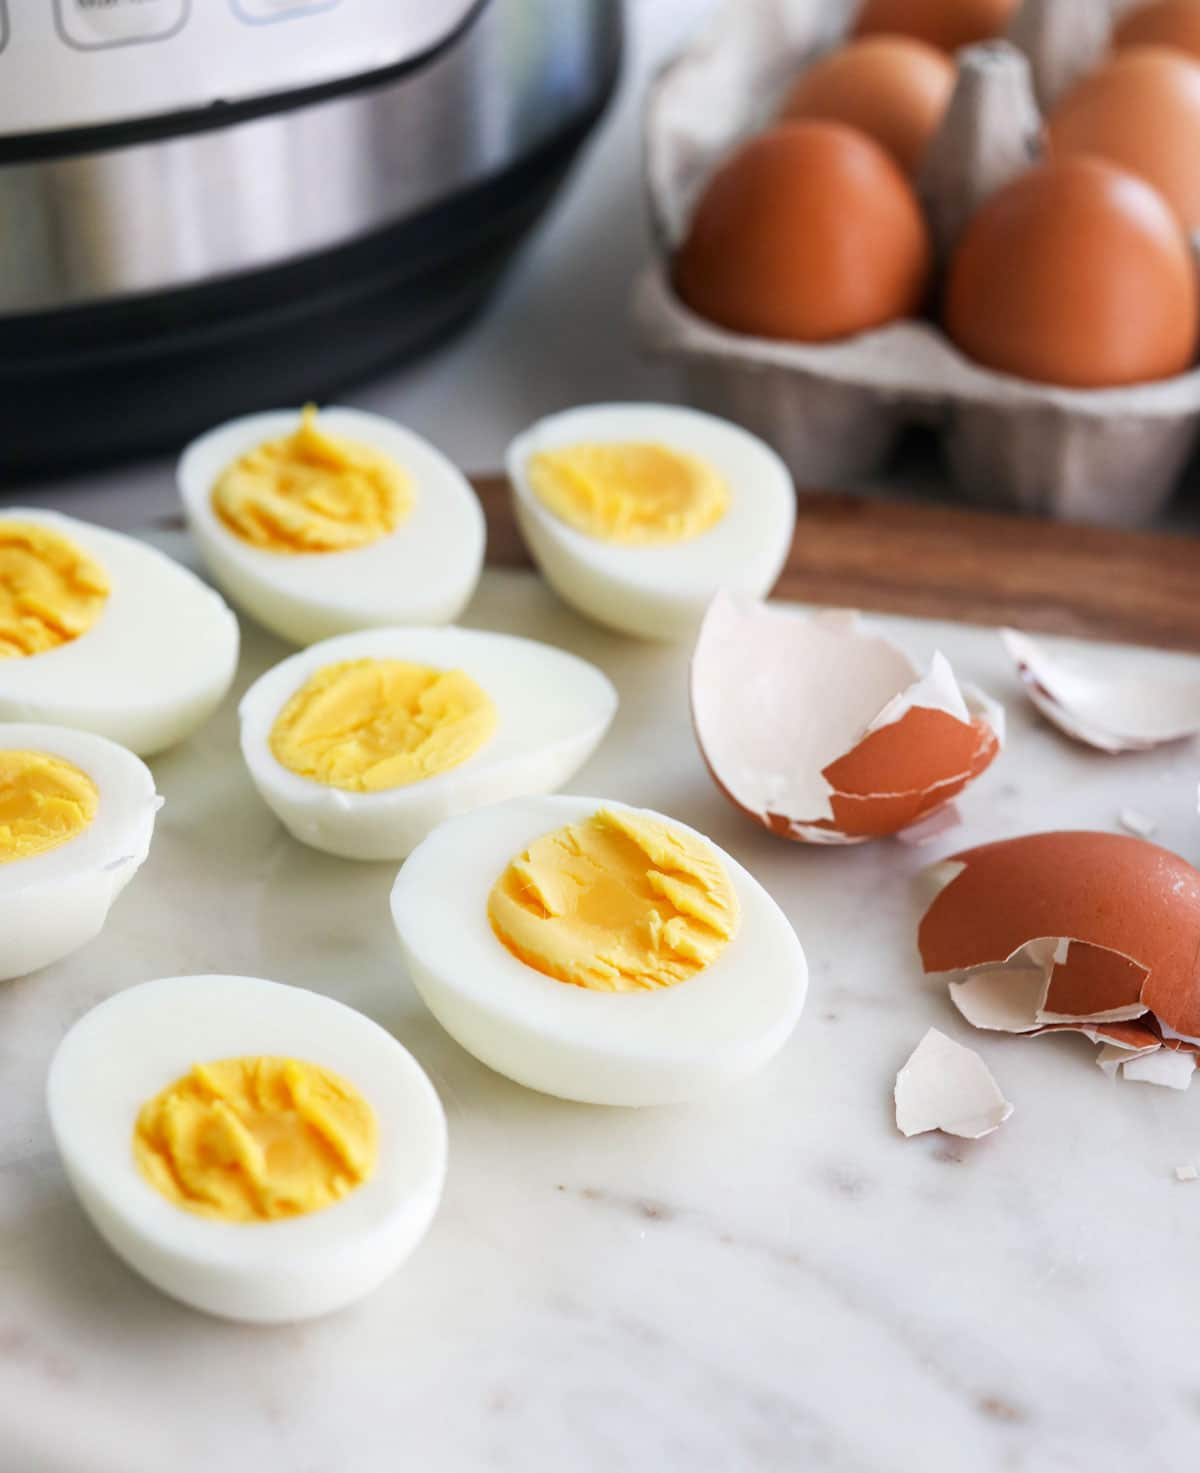 hard boiled eggs cut open with the peeled shell nearby